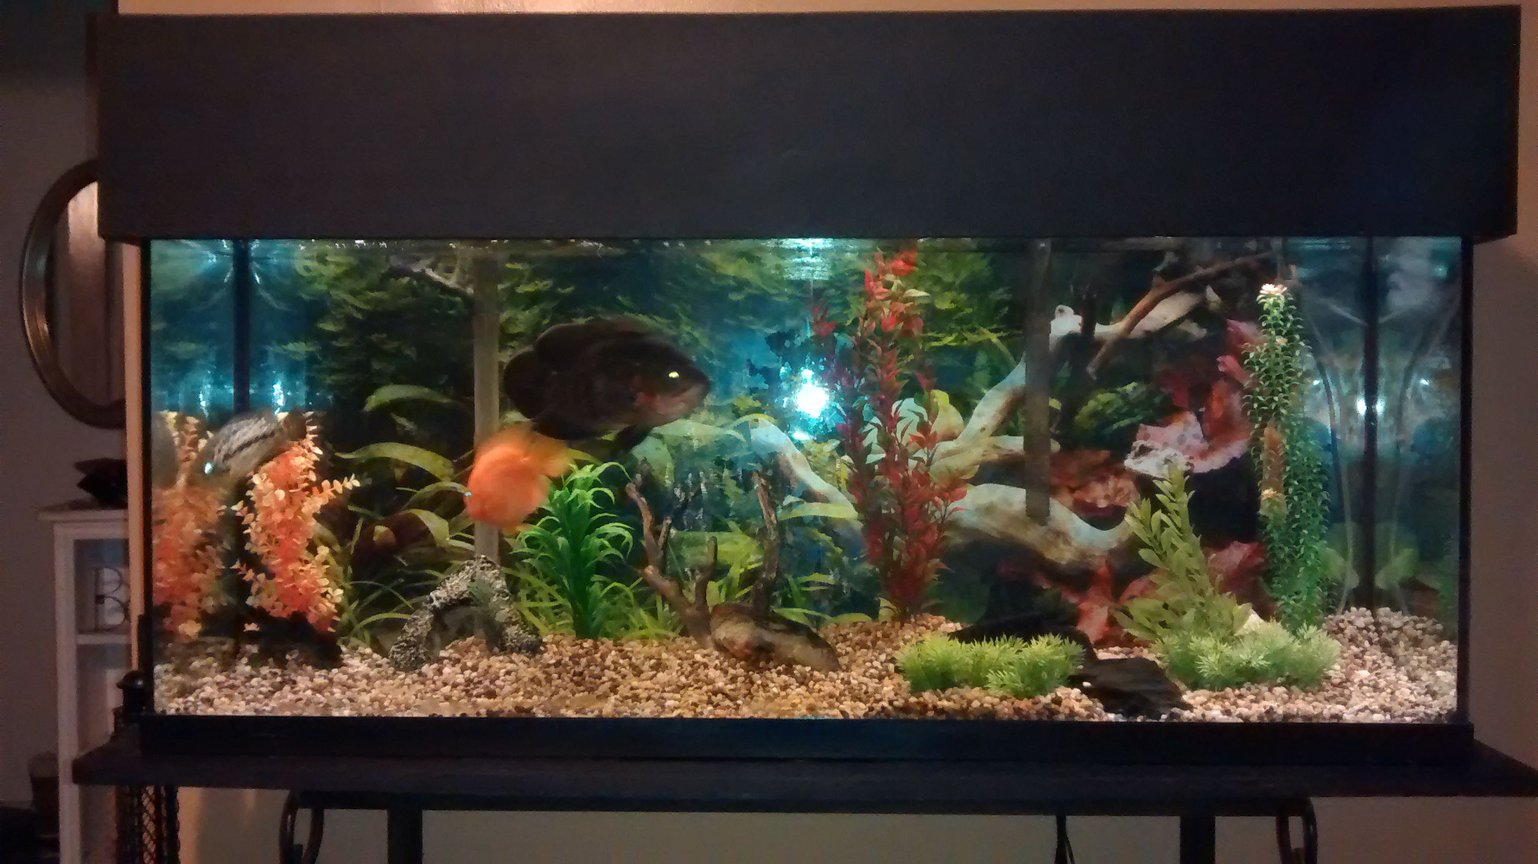 55 gallons freshwater fish tank (mostly fish and non-living decorations) - 55 gallon with Oscar, managuense, parrot cichlid.